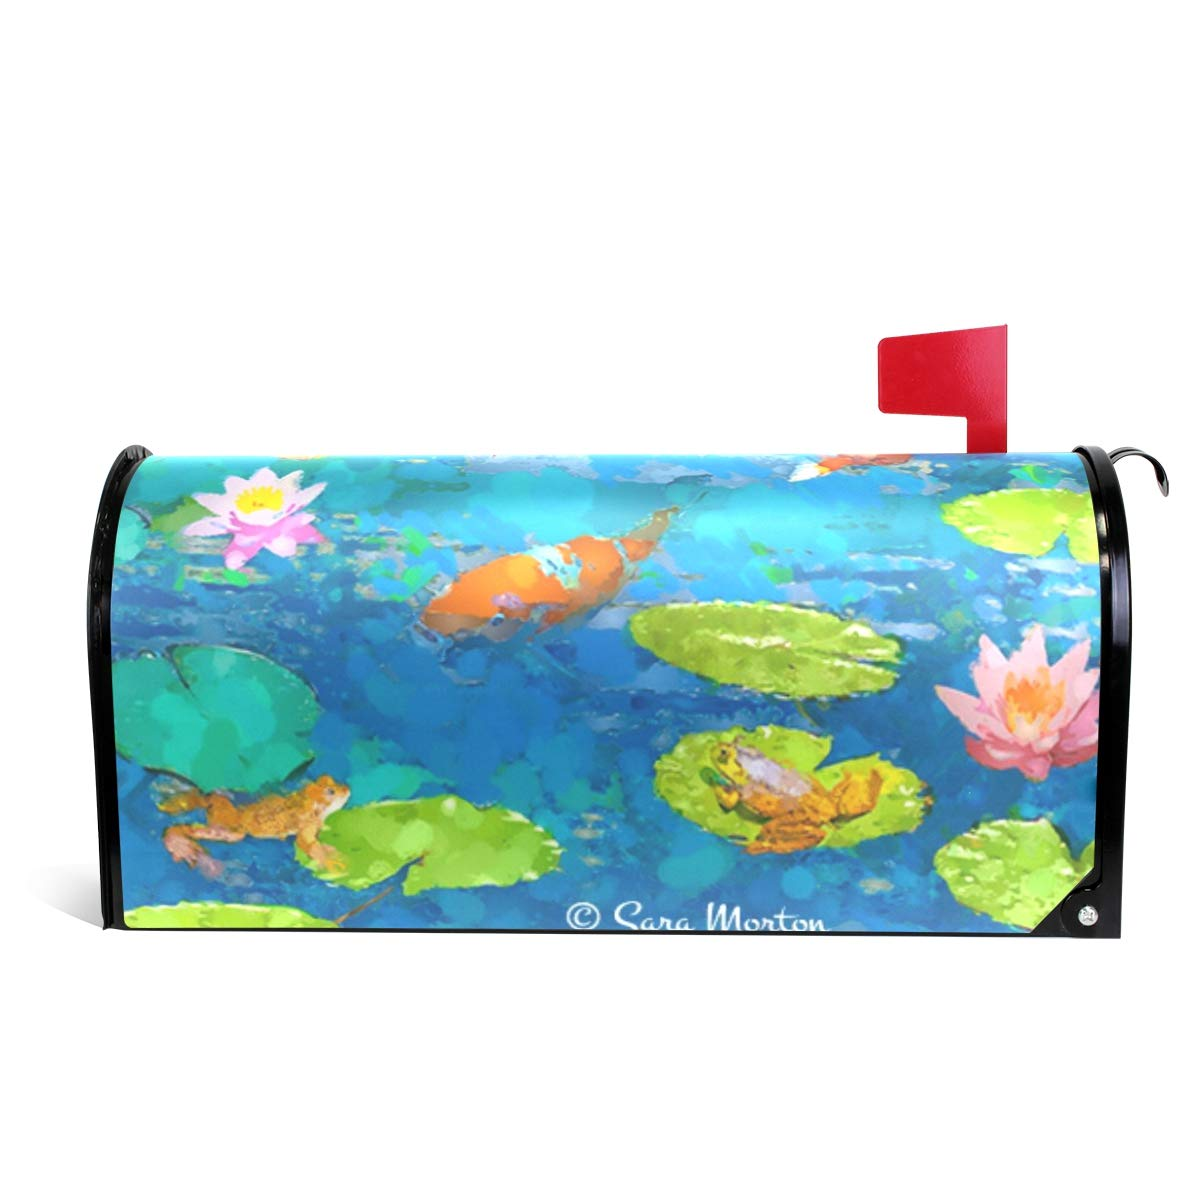 Ladninag Mailbox Covers Magnetic Koi Fish Pond with Lily Standard